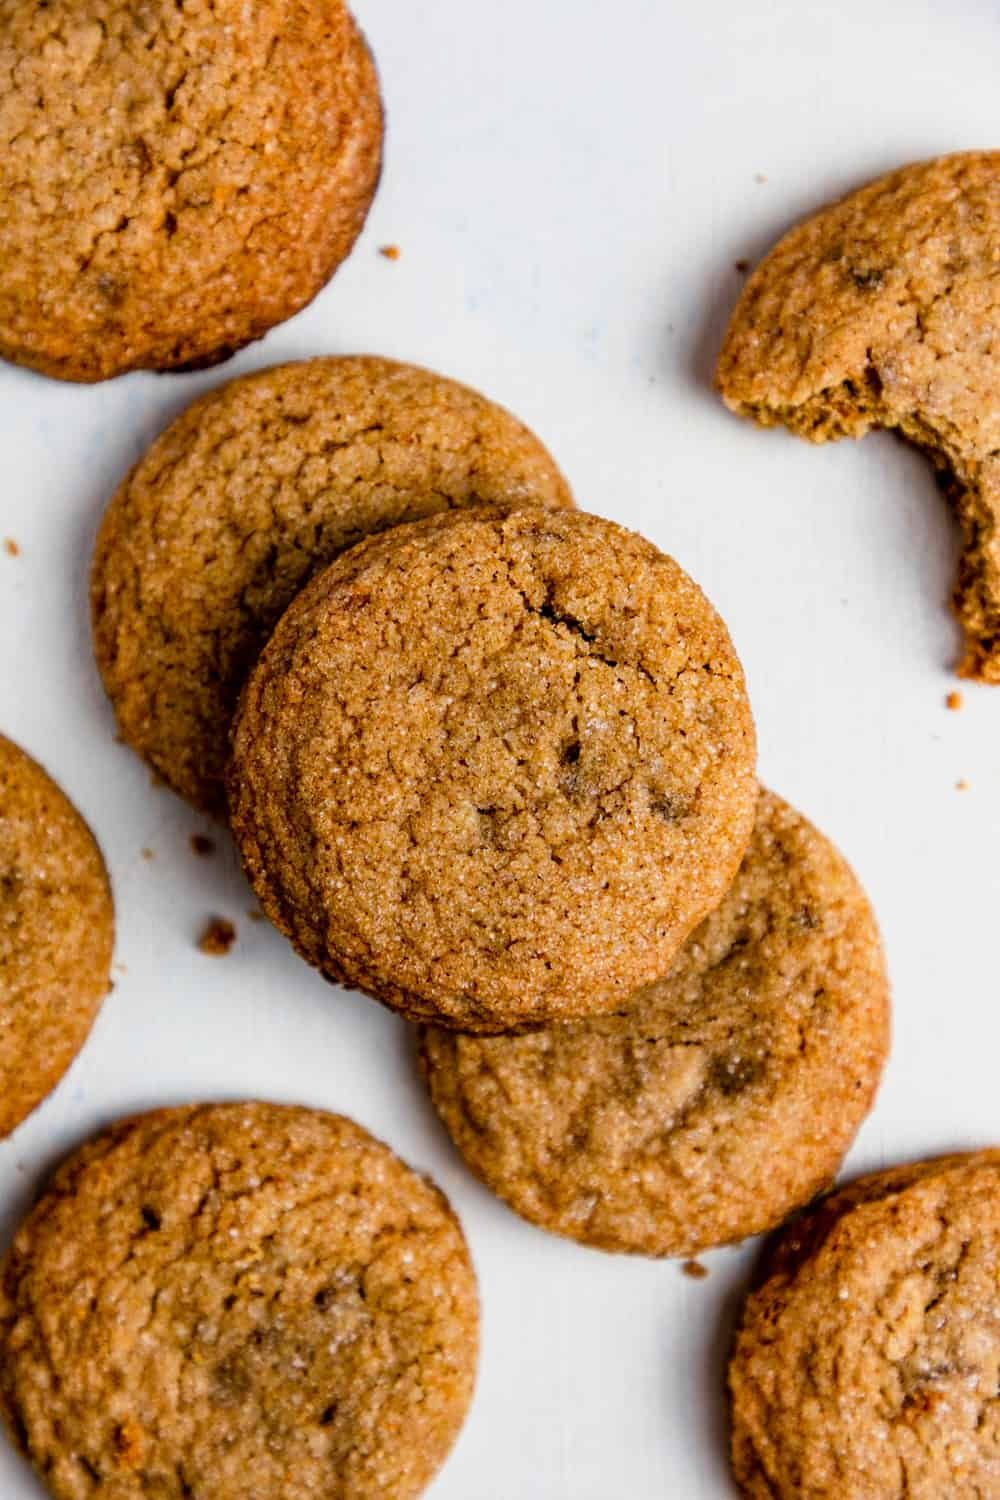 gluten free ginger snap set on a white table